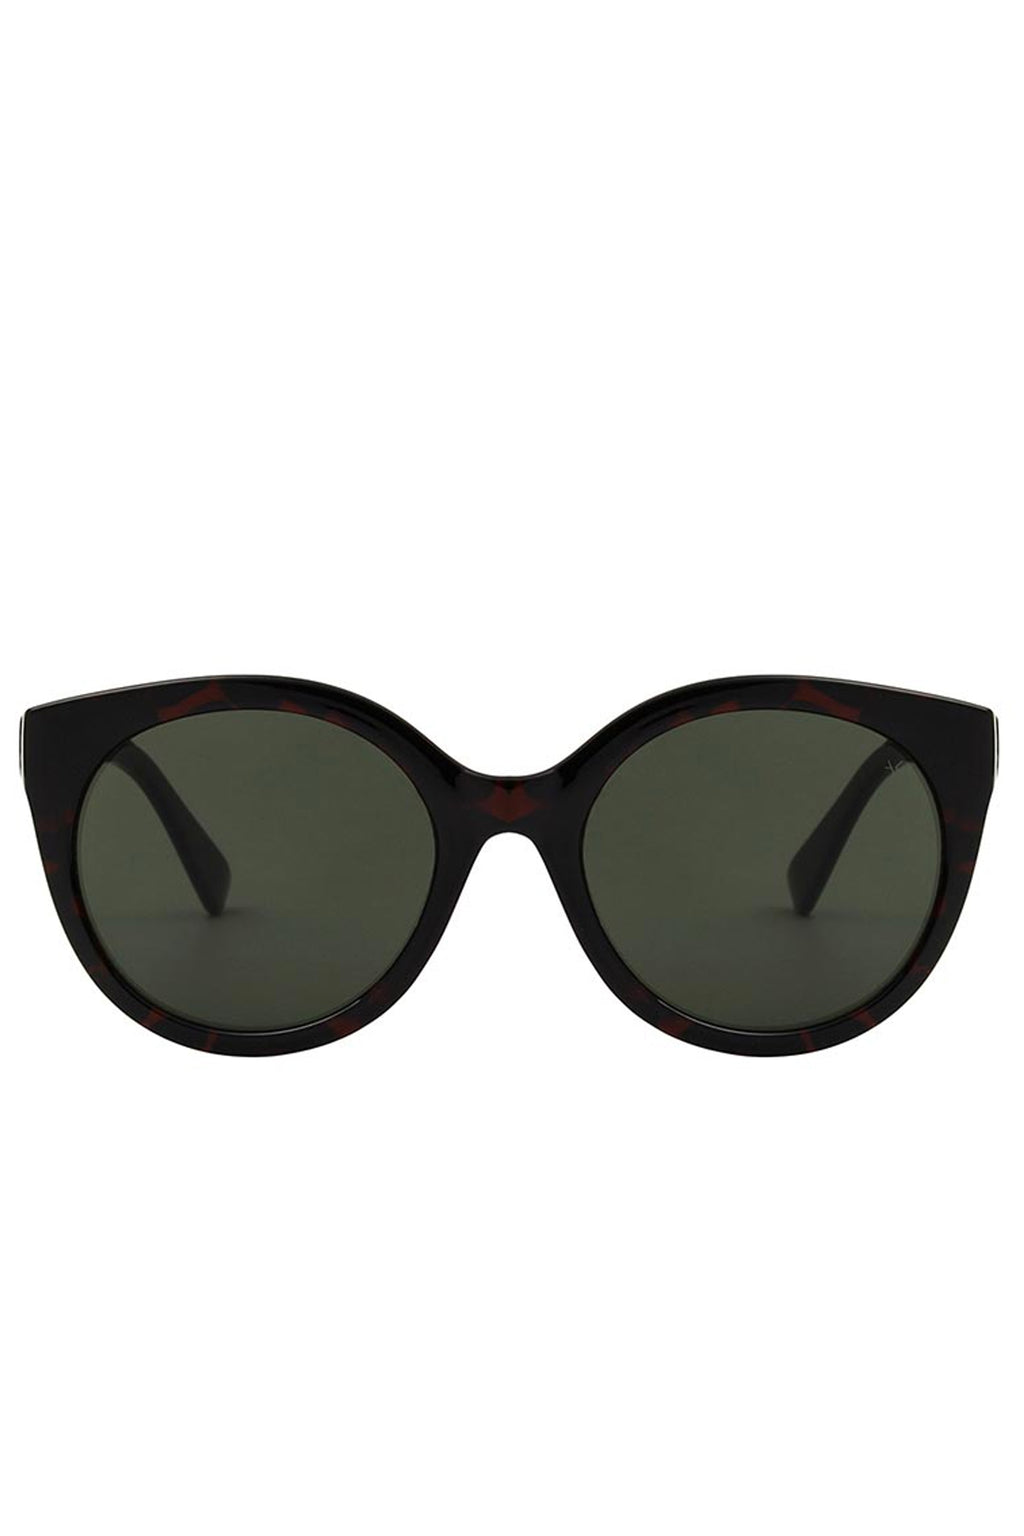 A Kjaerbede Butterfly Tortoise Sunglasses - The Mercantile London